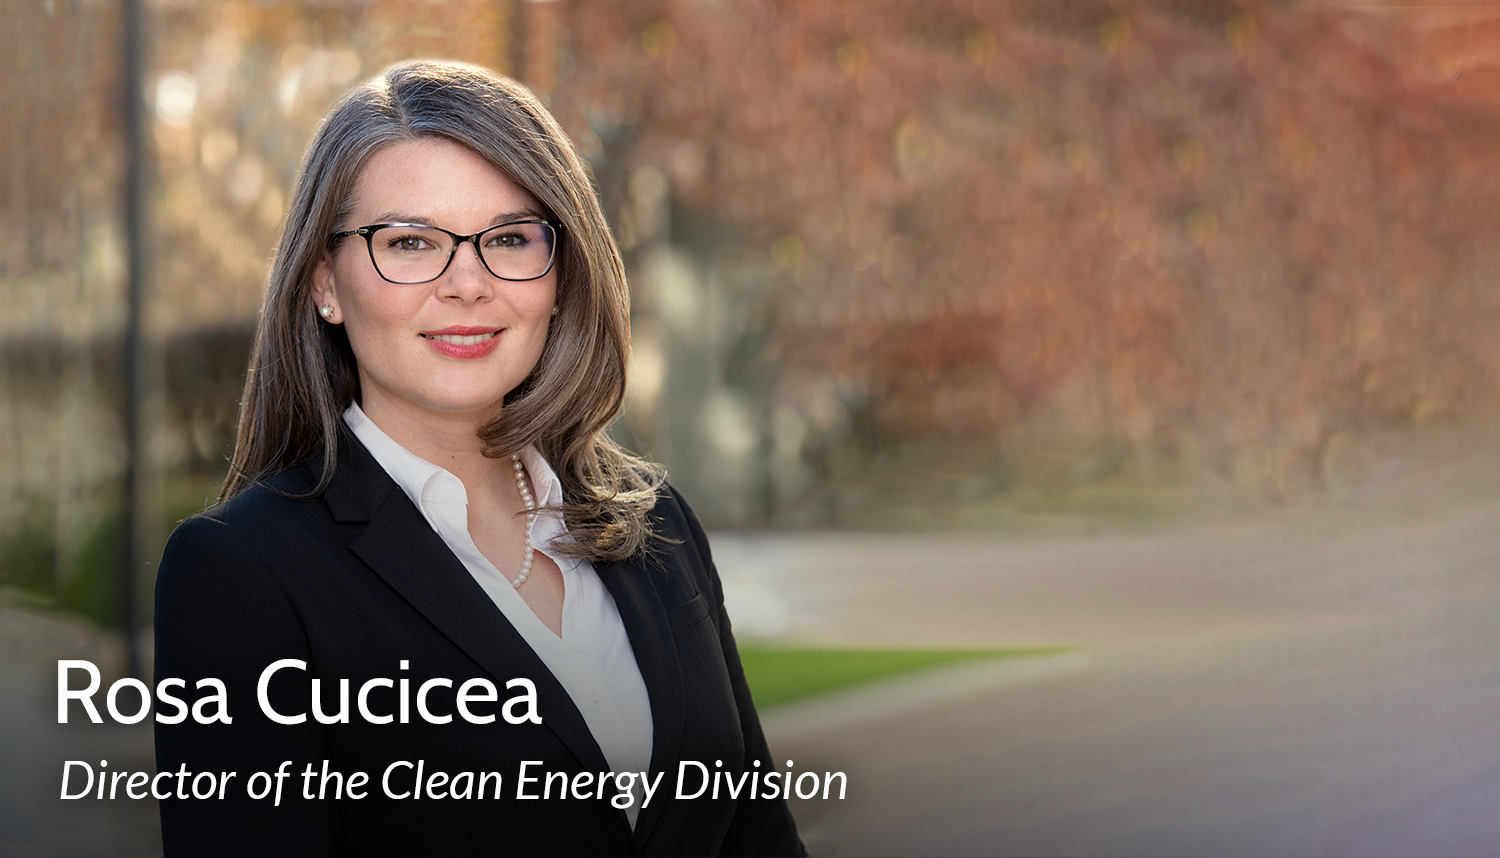 Rosa Cucicea, Director of Clean Energy Division